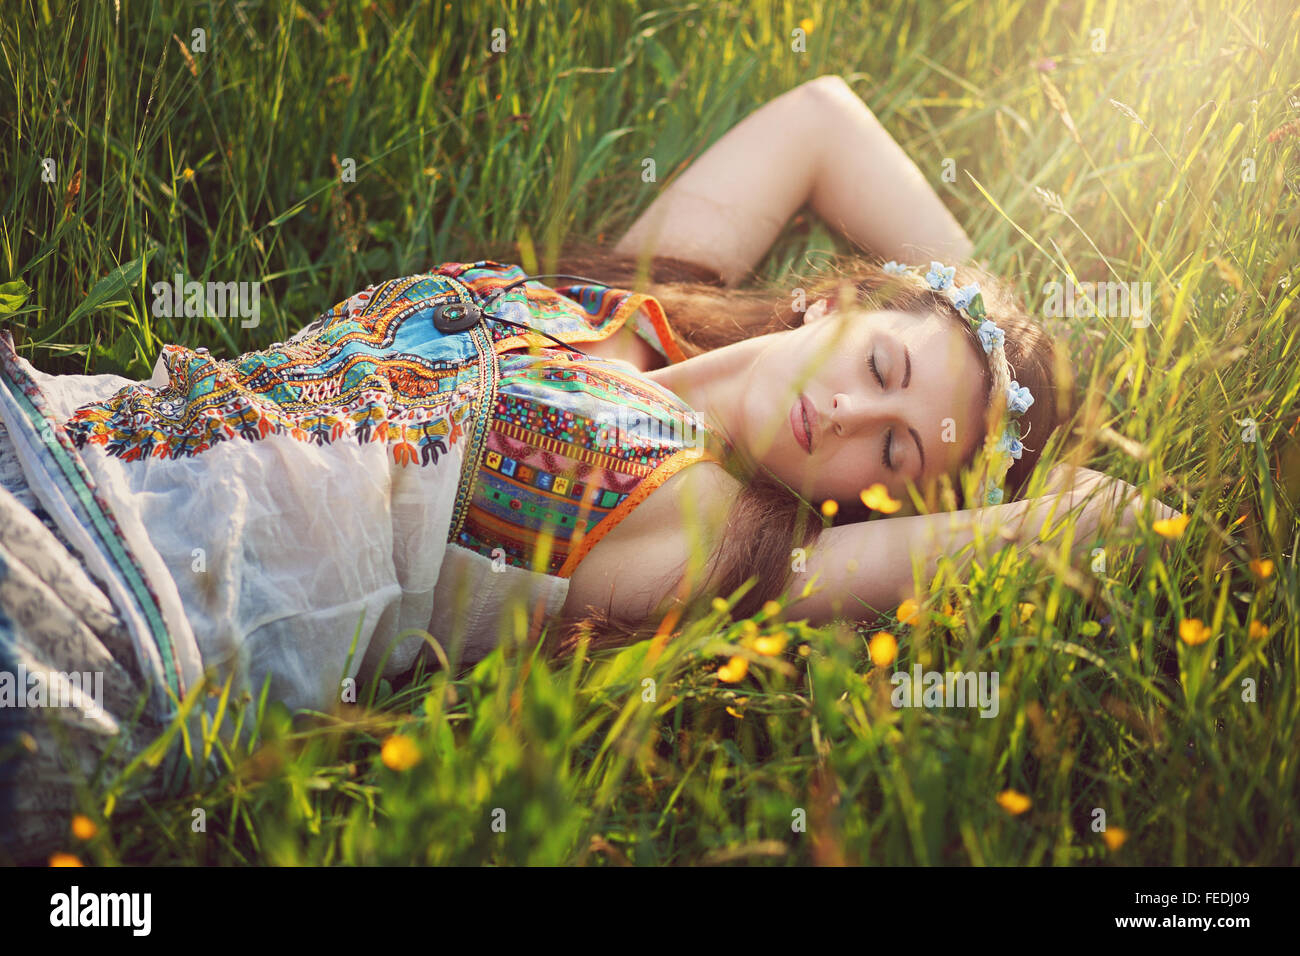 Belle femme hippie dormir paisiblement au printemps meadow Photo Stock